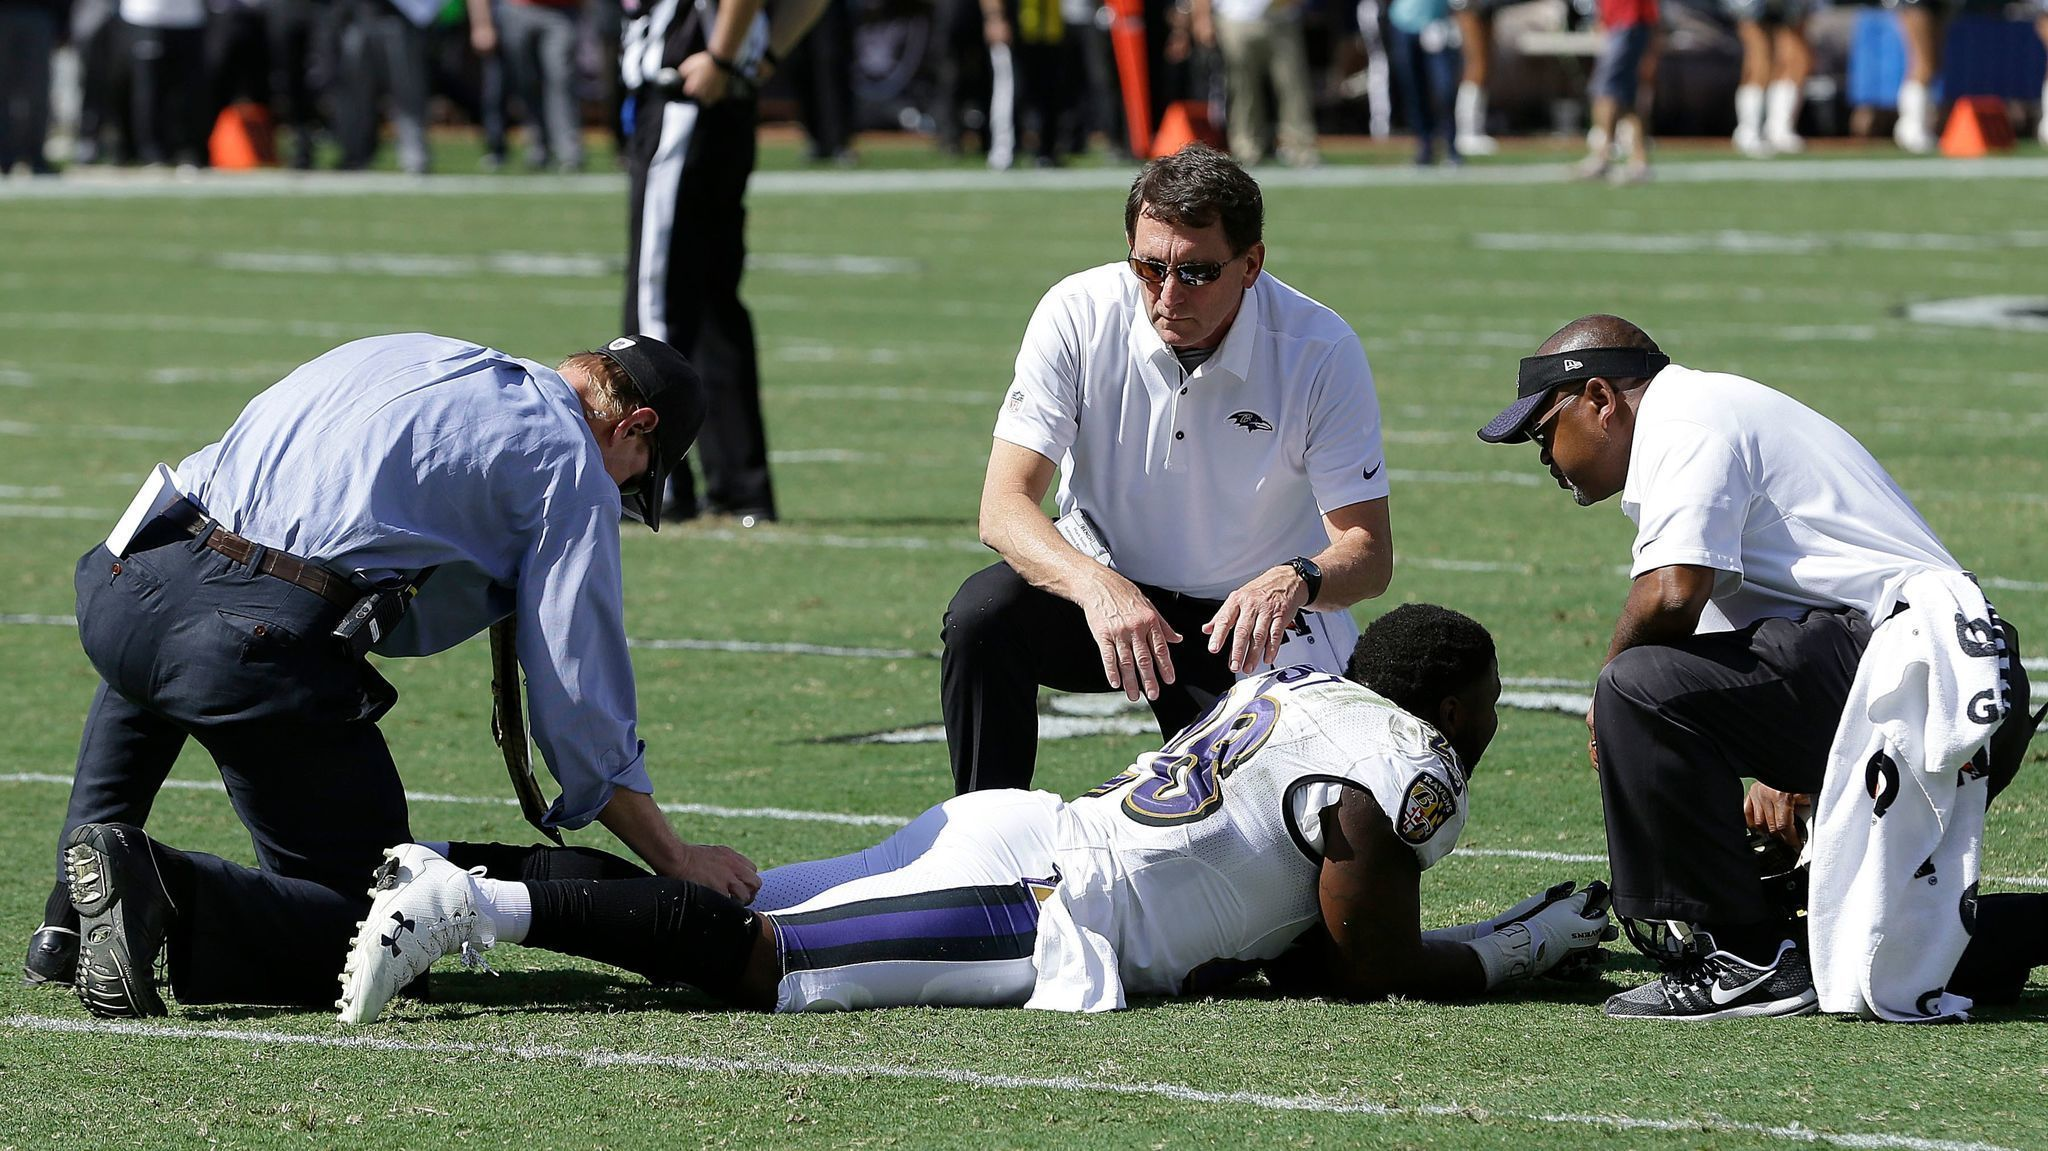 Bs-sp-not-much-of-update-on-terrance-west-from-john-harbaugh-20171009